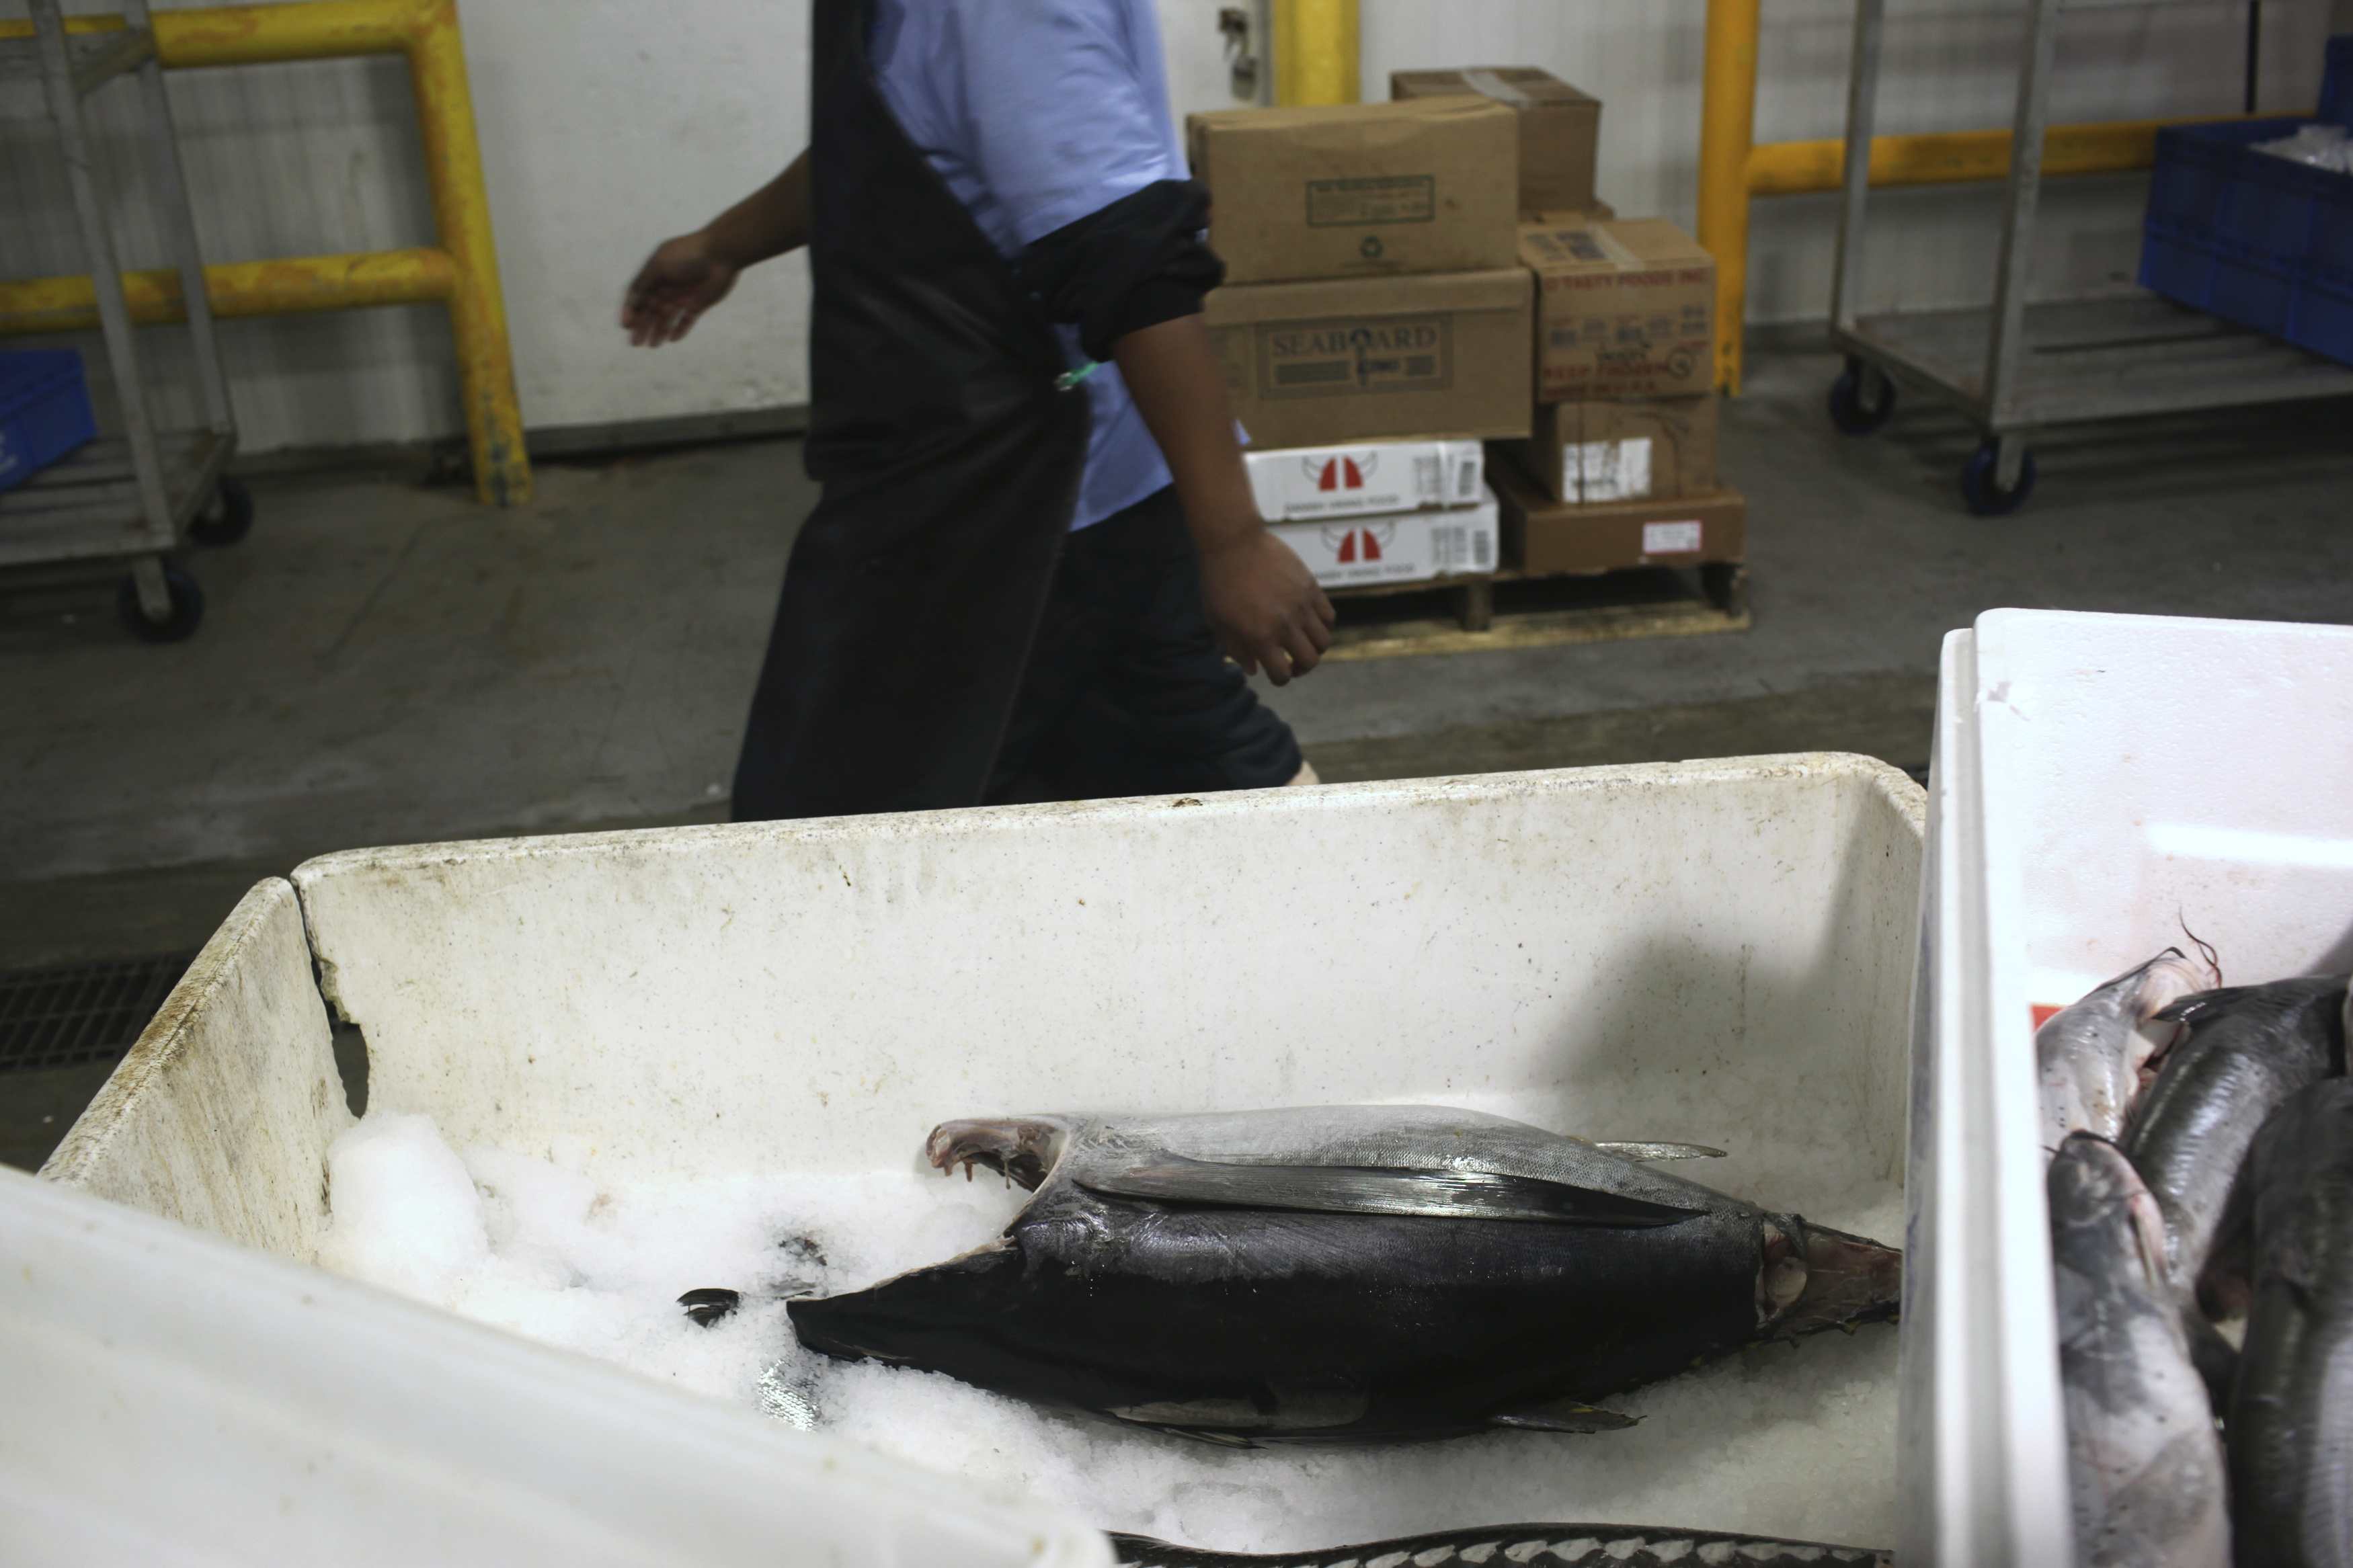 A worker walks past a box with a big eye tuna, caught in the South Pacific, in a fish processing facility at Pier 45 on Fisherman's Wharf in San Francisco, California May 30, 2012. REUTERS/Robert Galbraith